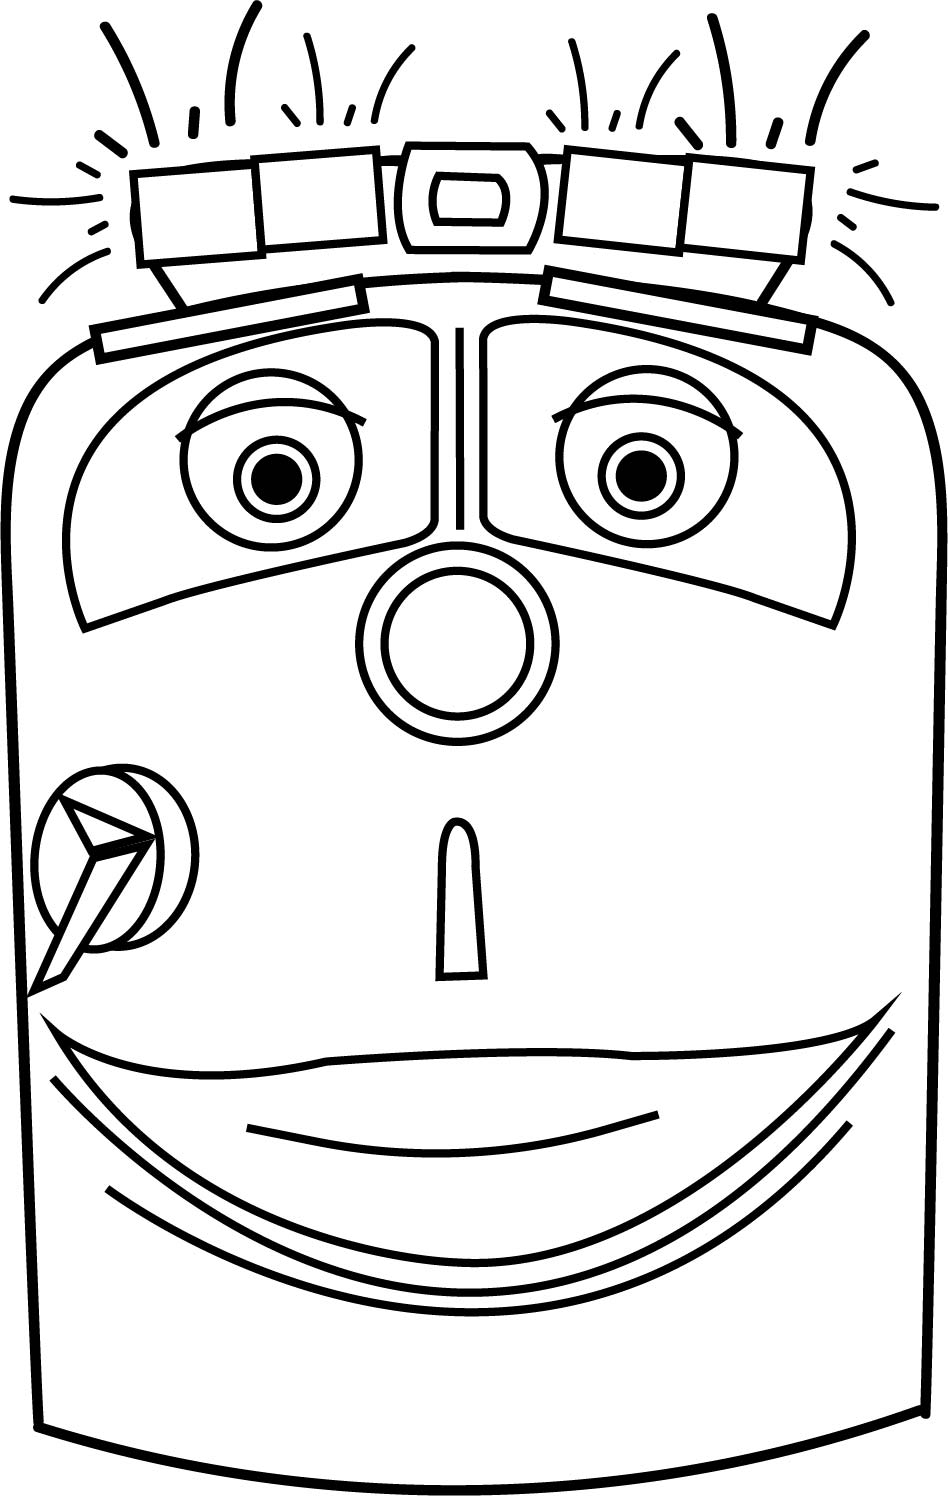 Chuggington Chief Coloring Page